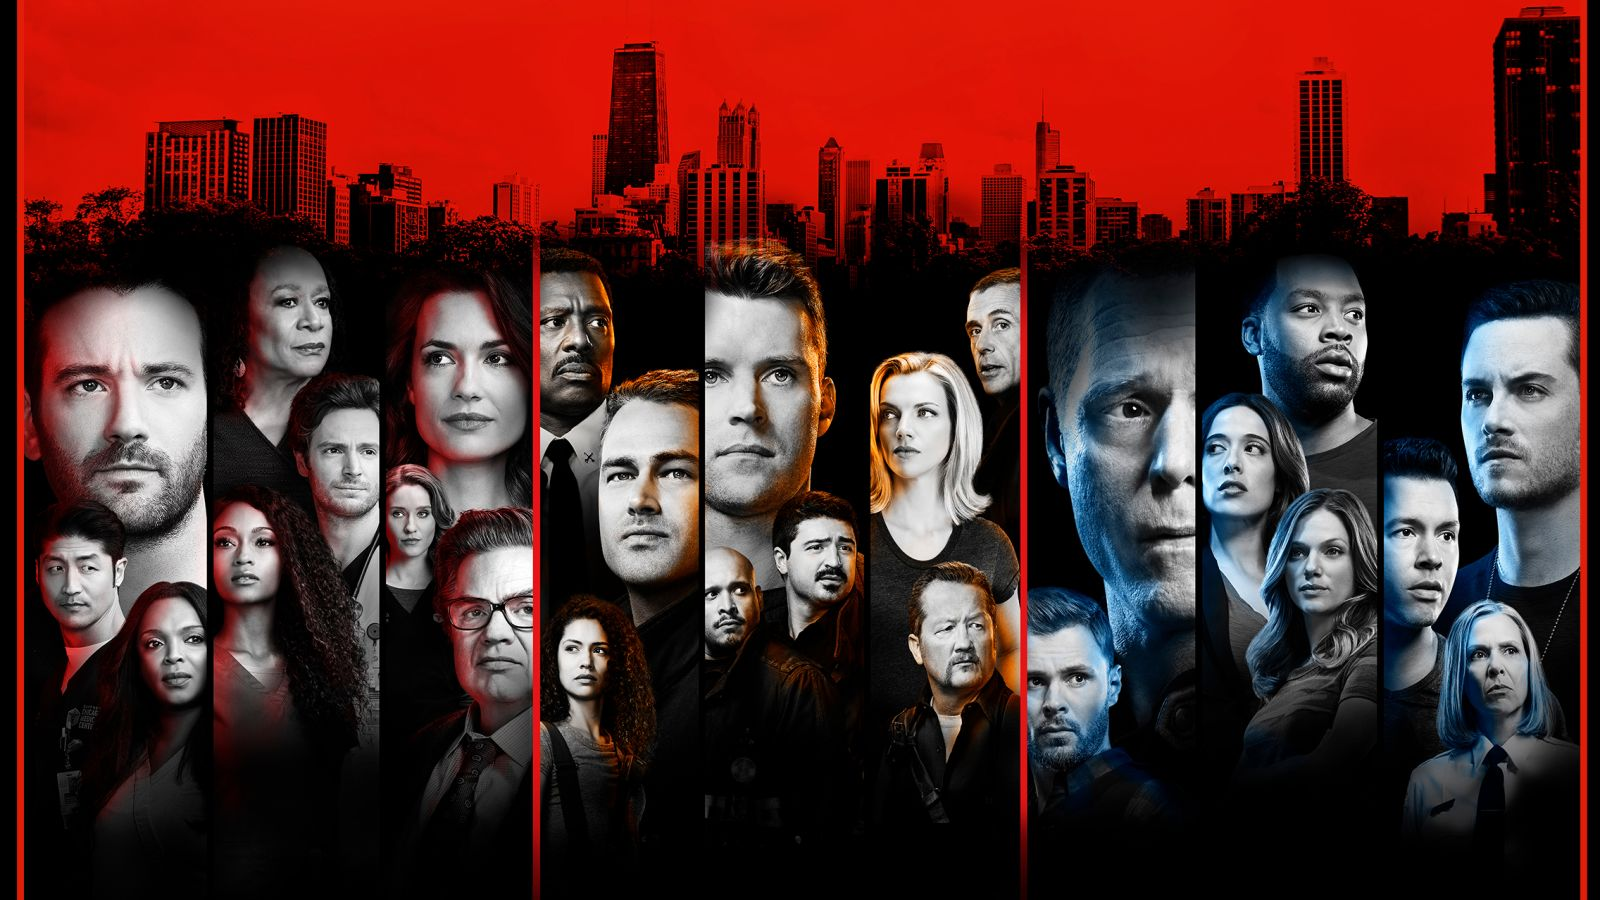 chicago med pd when the seasons start and